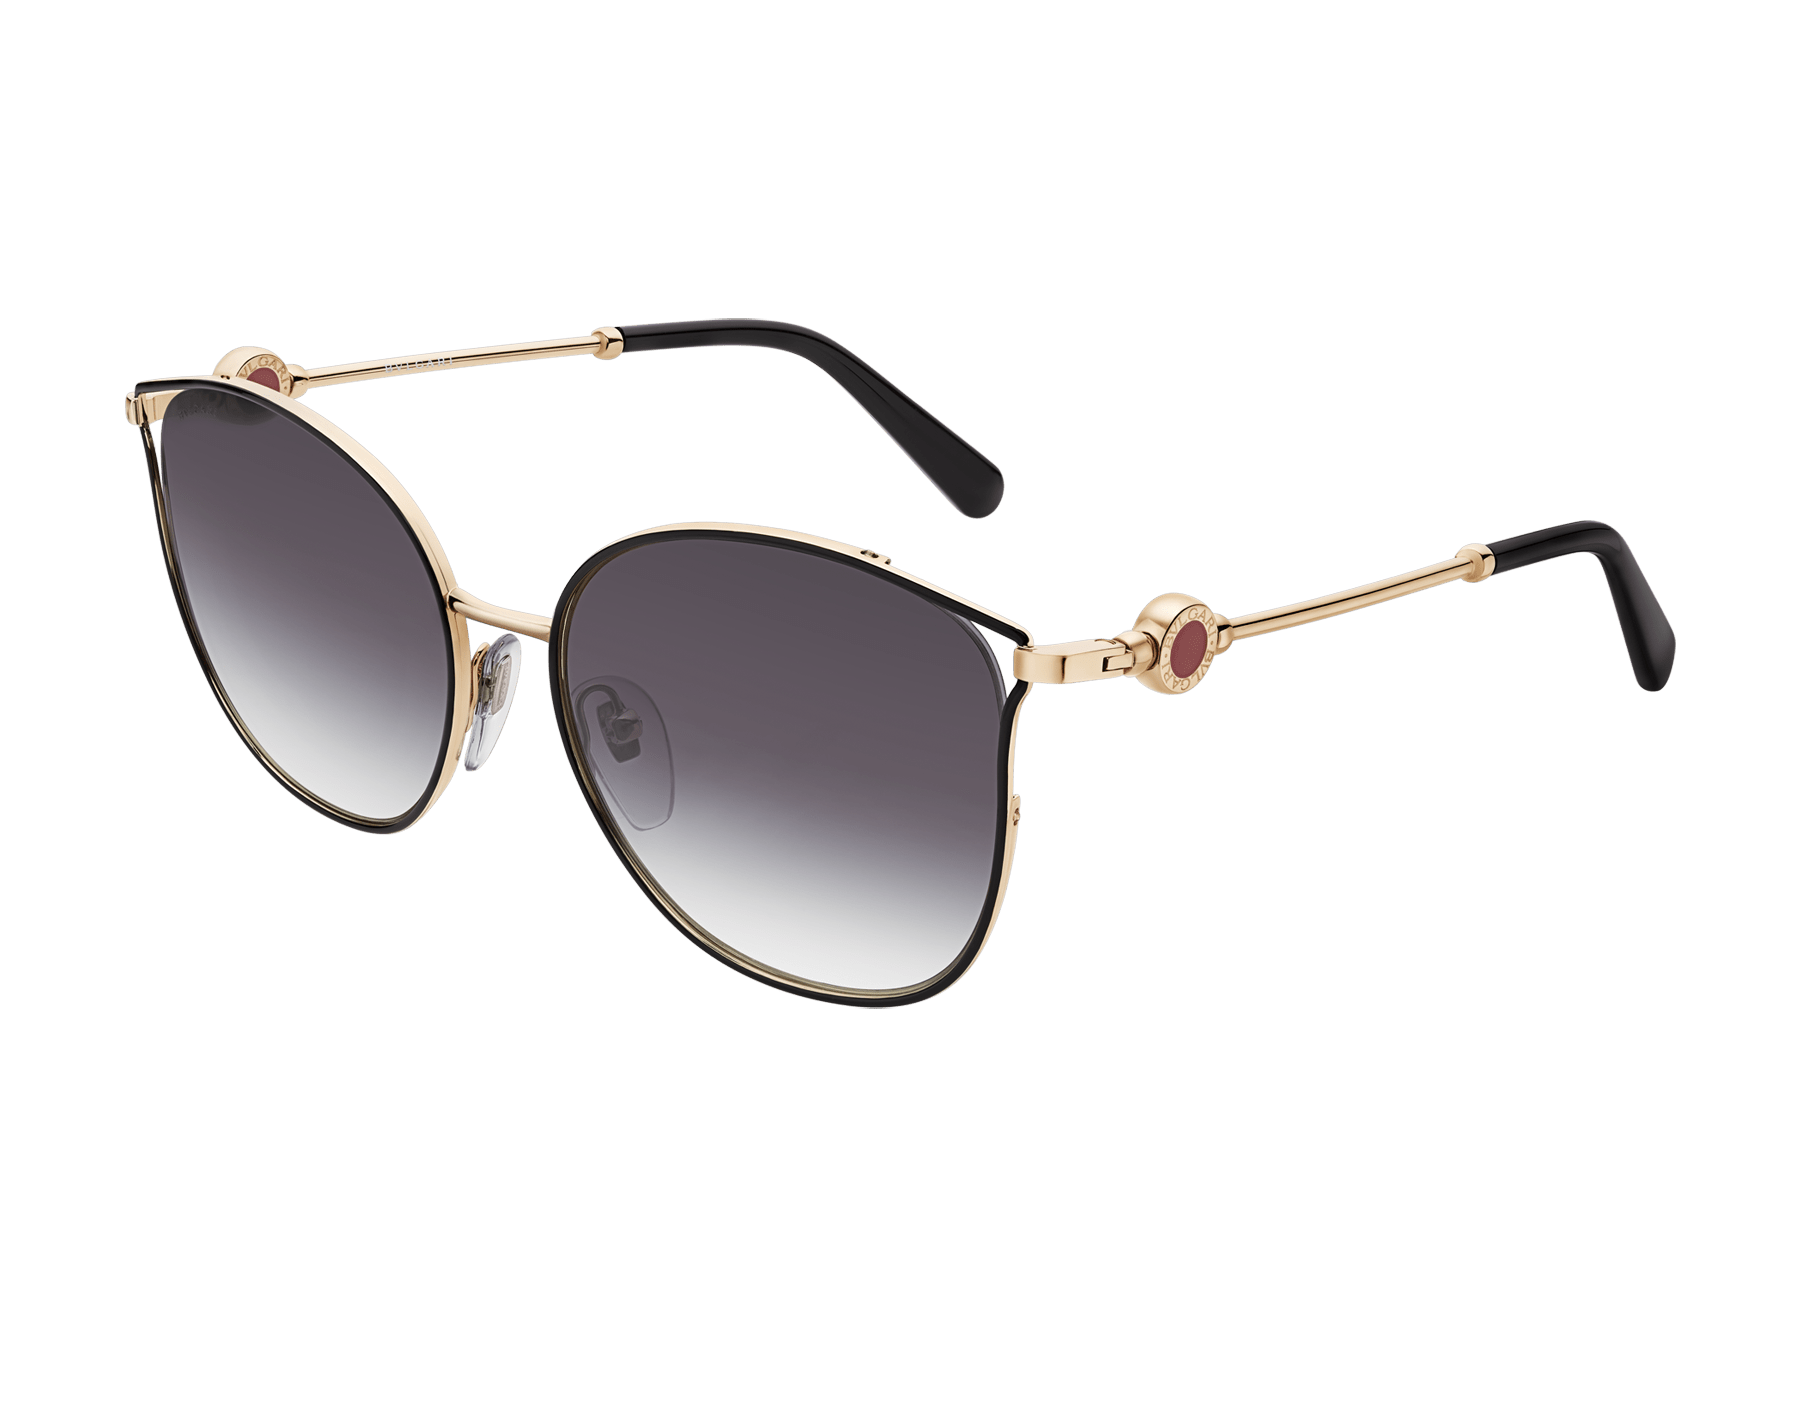 BVLGARI BVLGARI rounded cat-eye metal sunglasses 903663 image 1